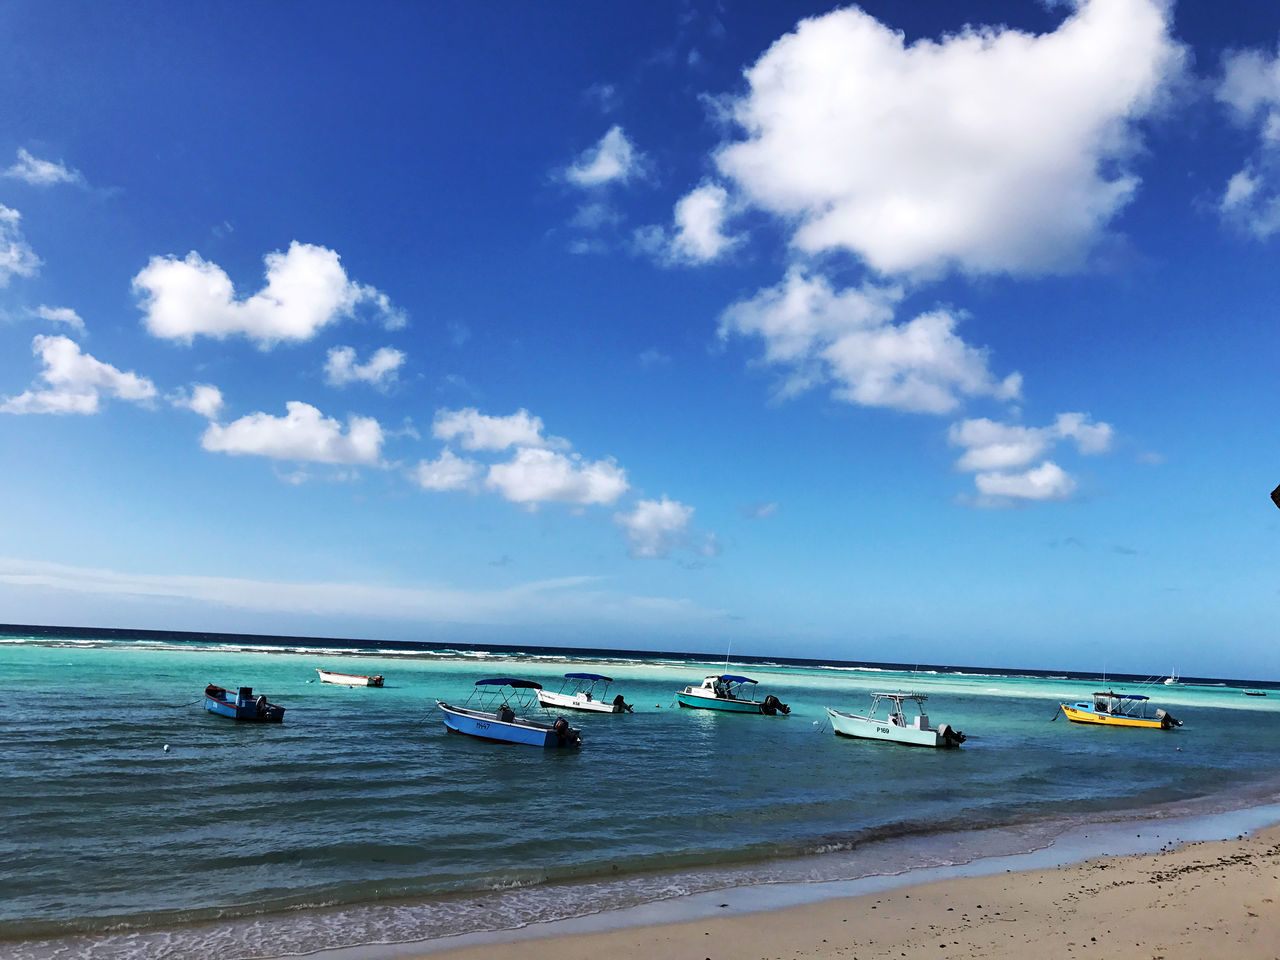 sea, beach, water, sky, beauty in nature, horizon over water, scenics, nature, tranquil scene, sand, nautical vessel, tranquility, cloud - sky, day, transportation, blue, outdoors, no people, jet boat, outrigger